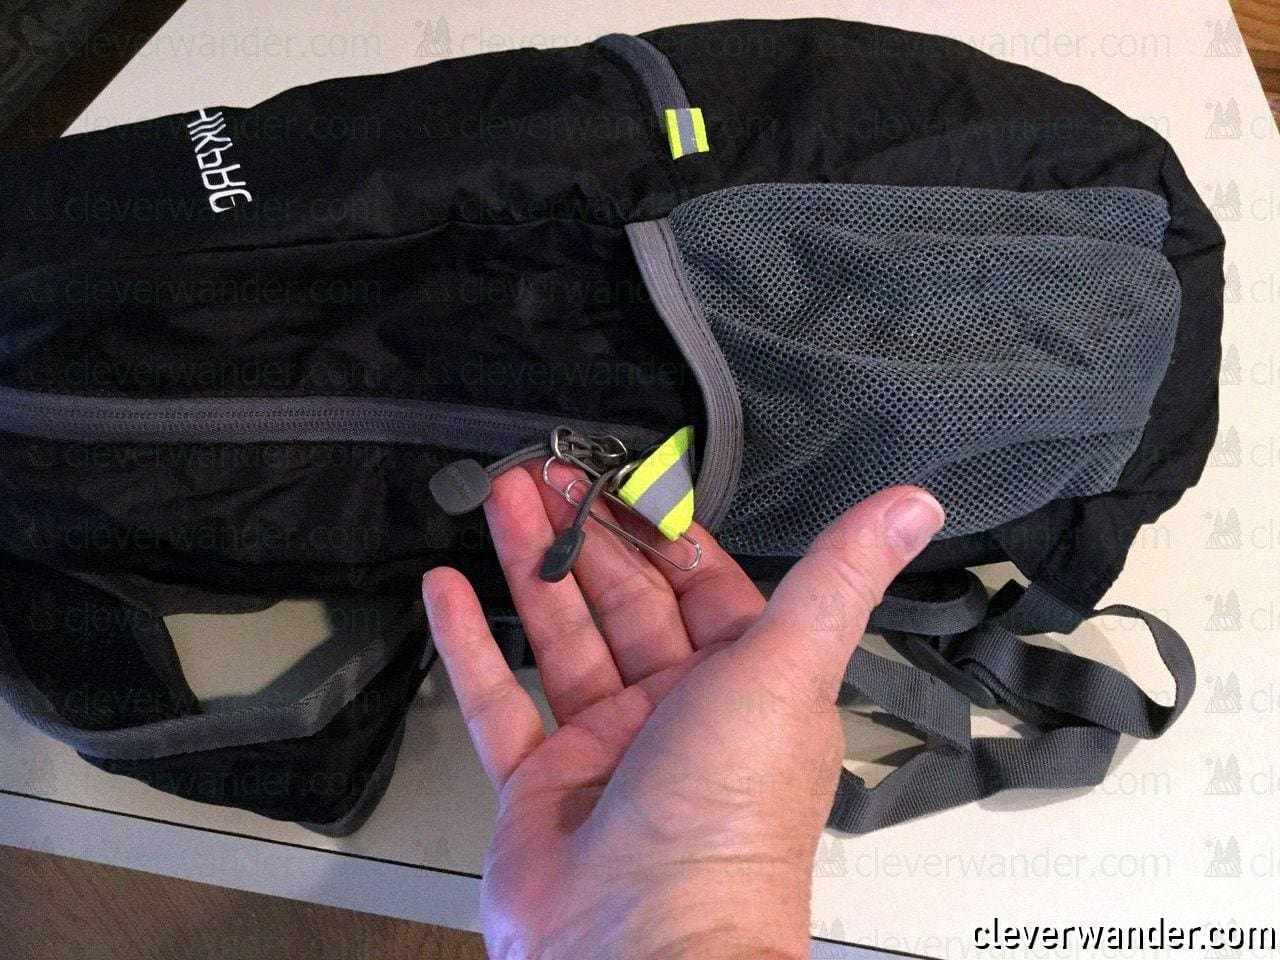 Hikpro Lightweight Packable Backpack - image review 1